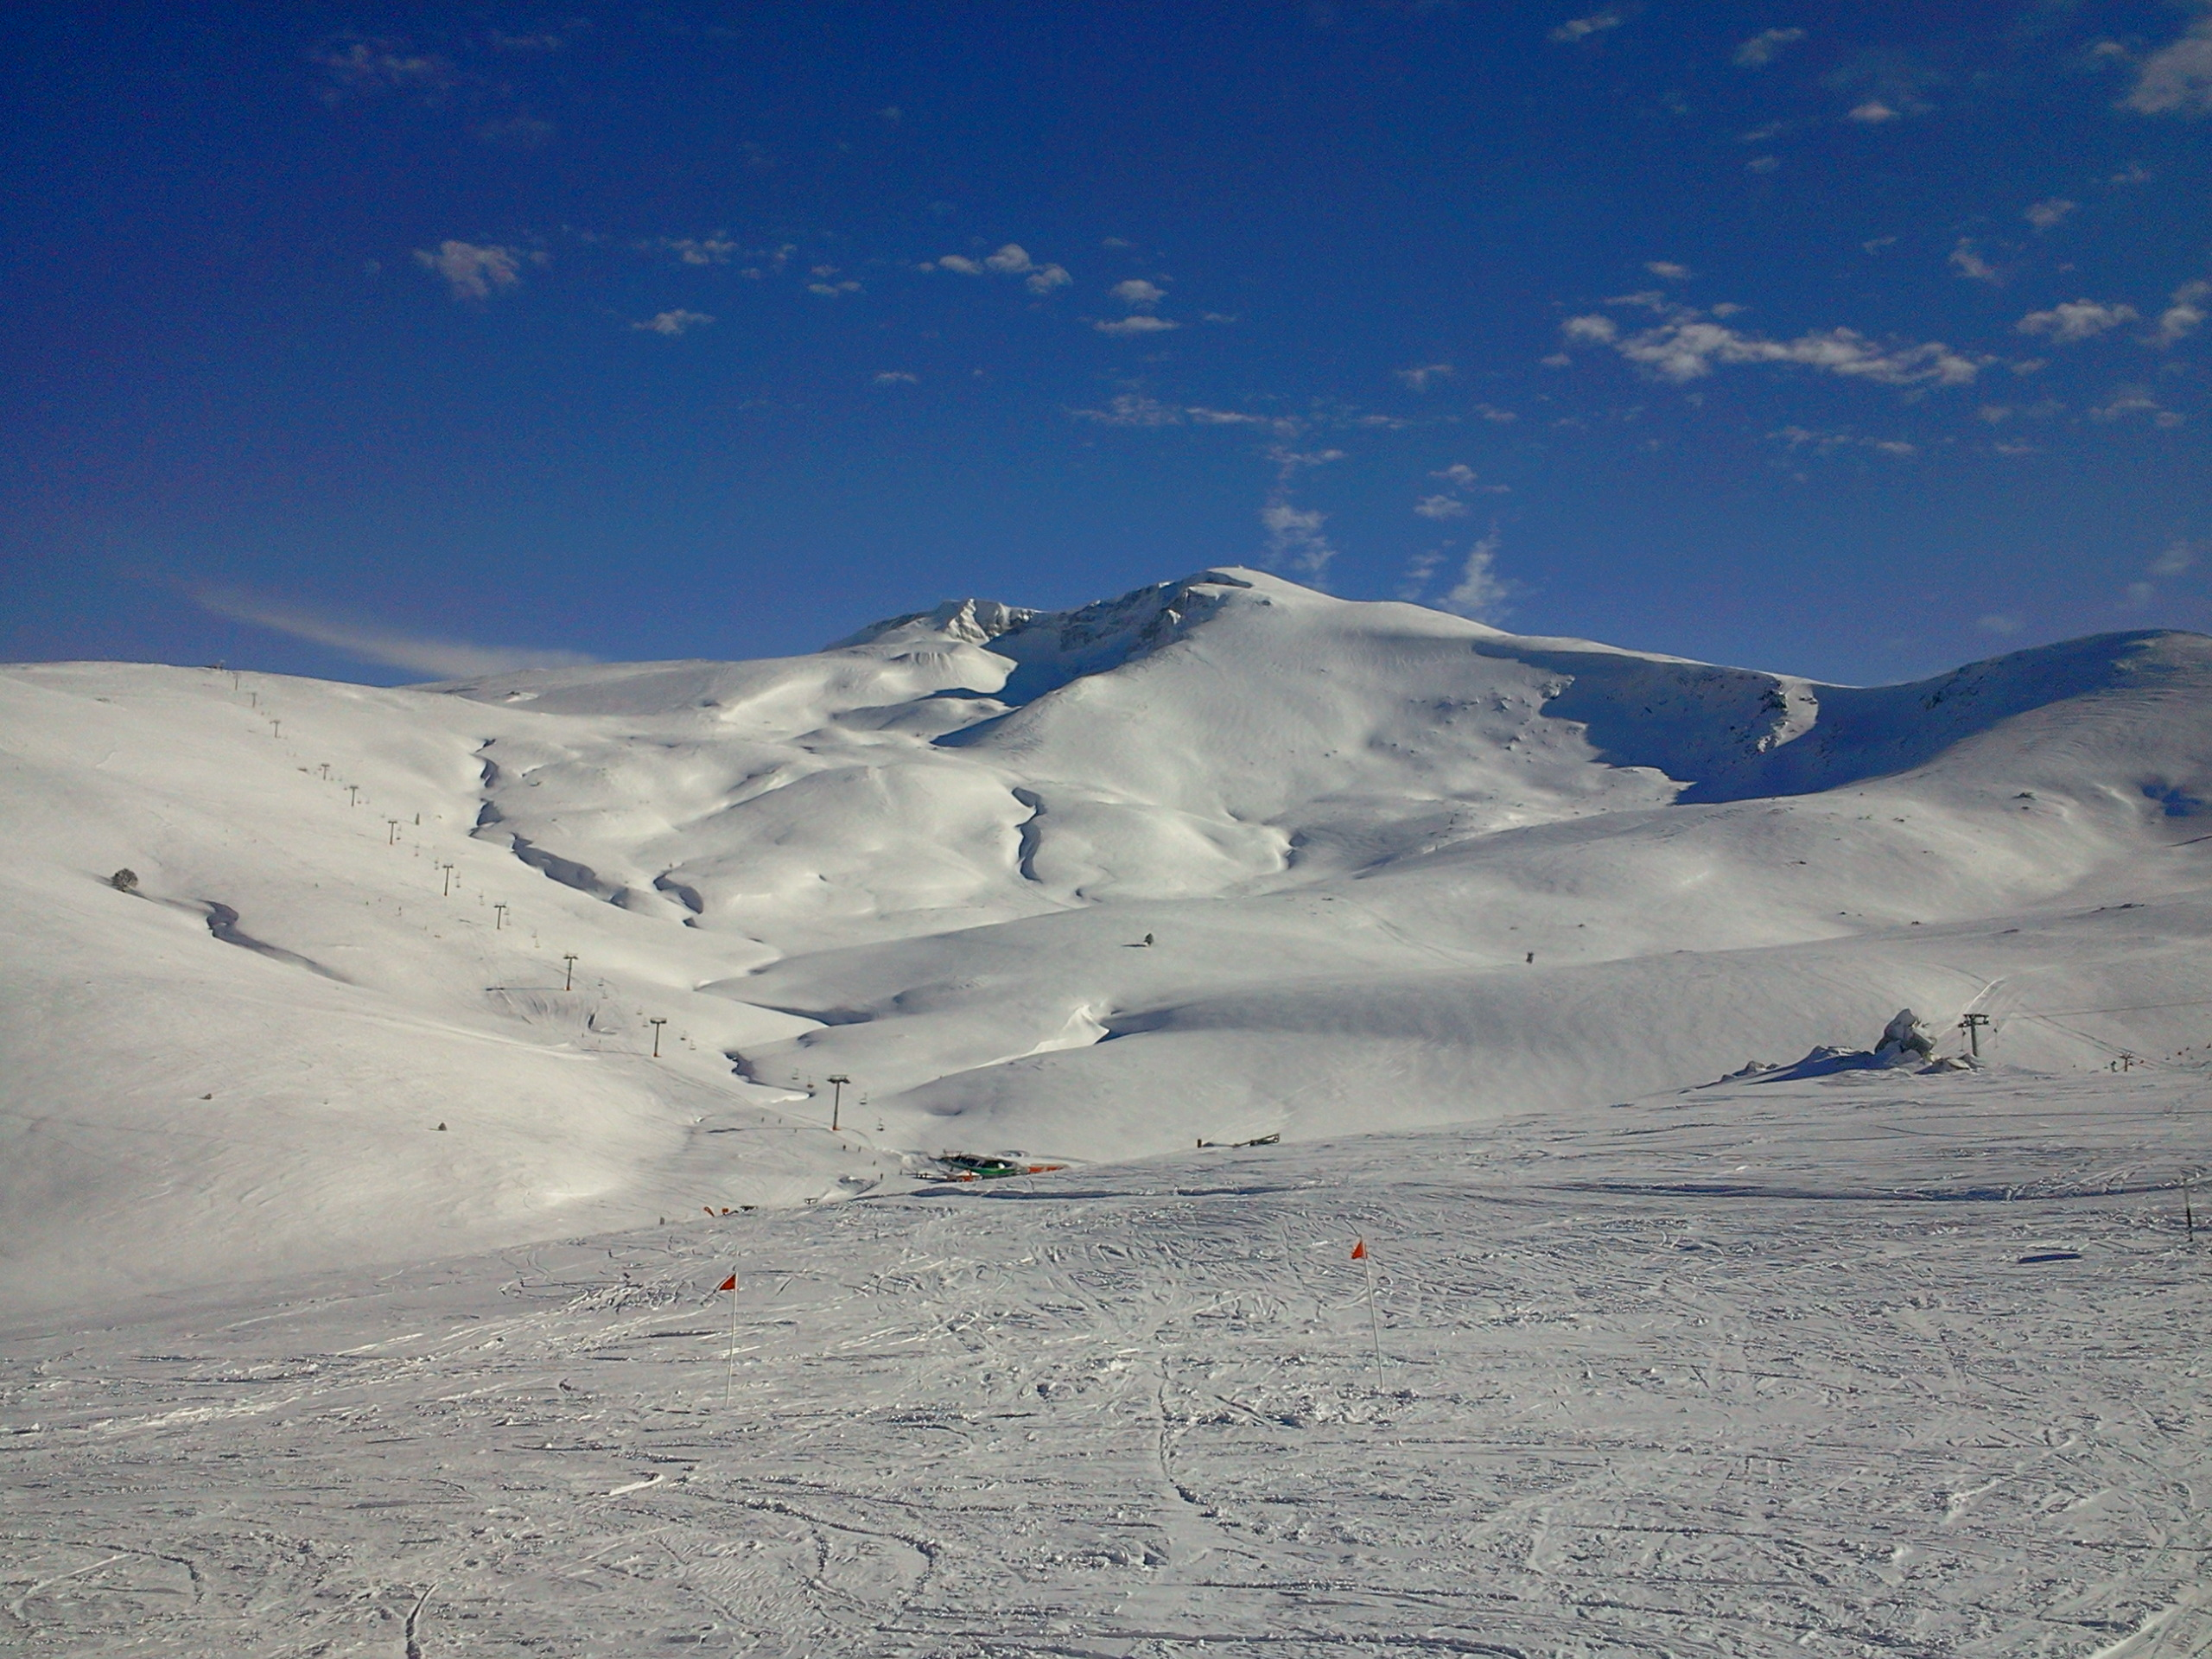 uludağ skiing center